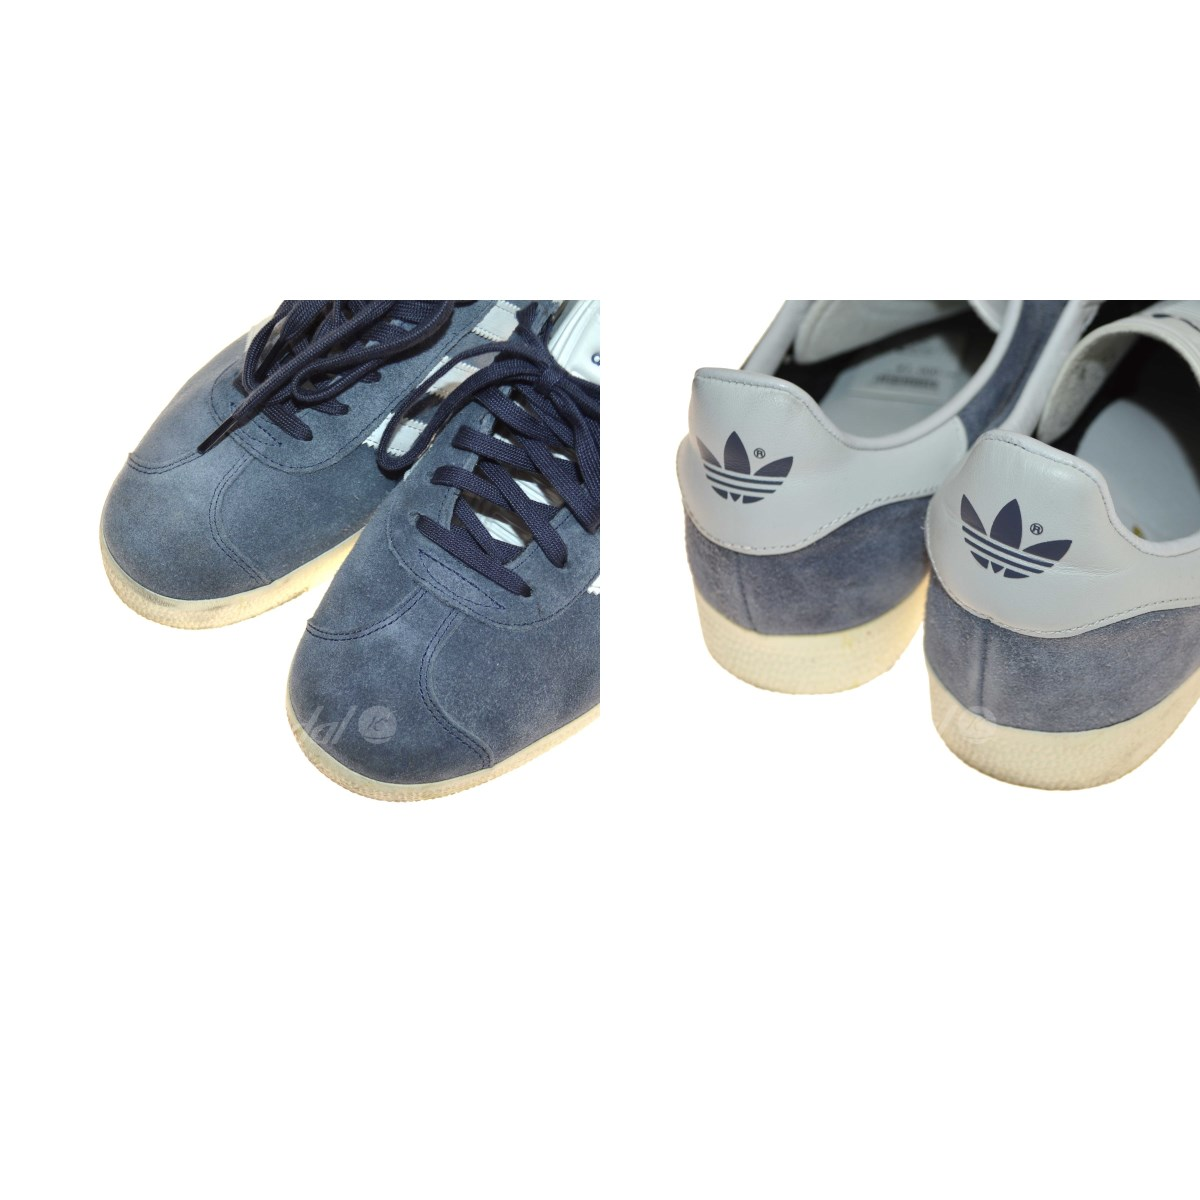 adidas GAZELLE suede sneakers gray size: 27. 5cm